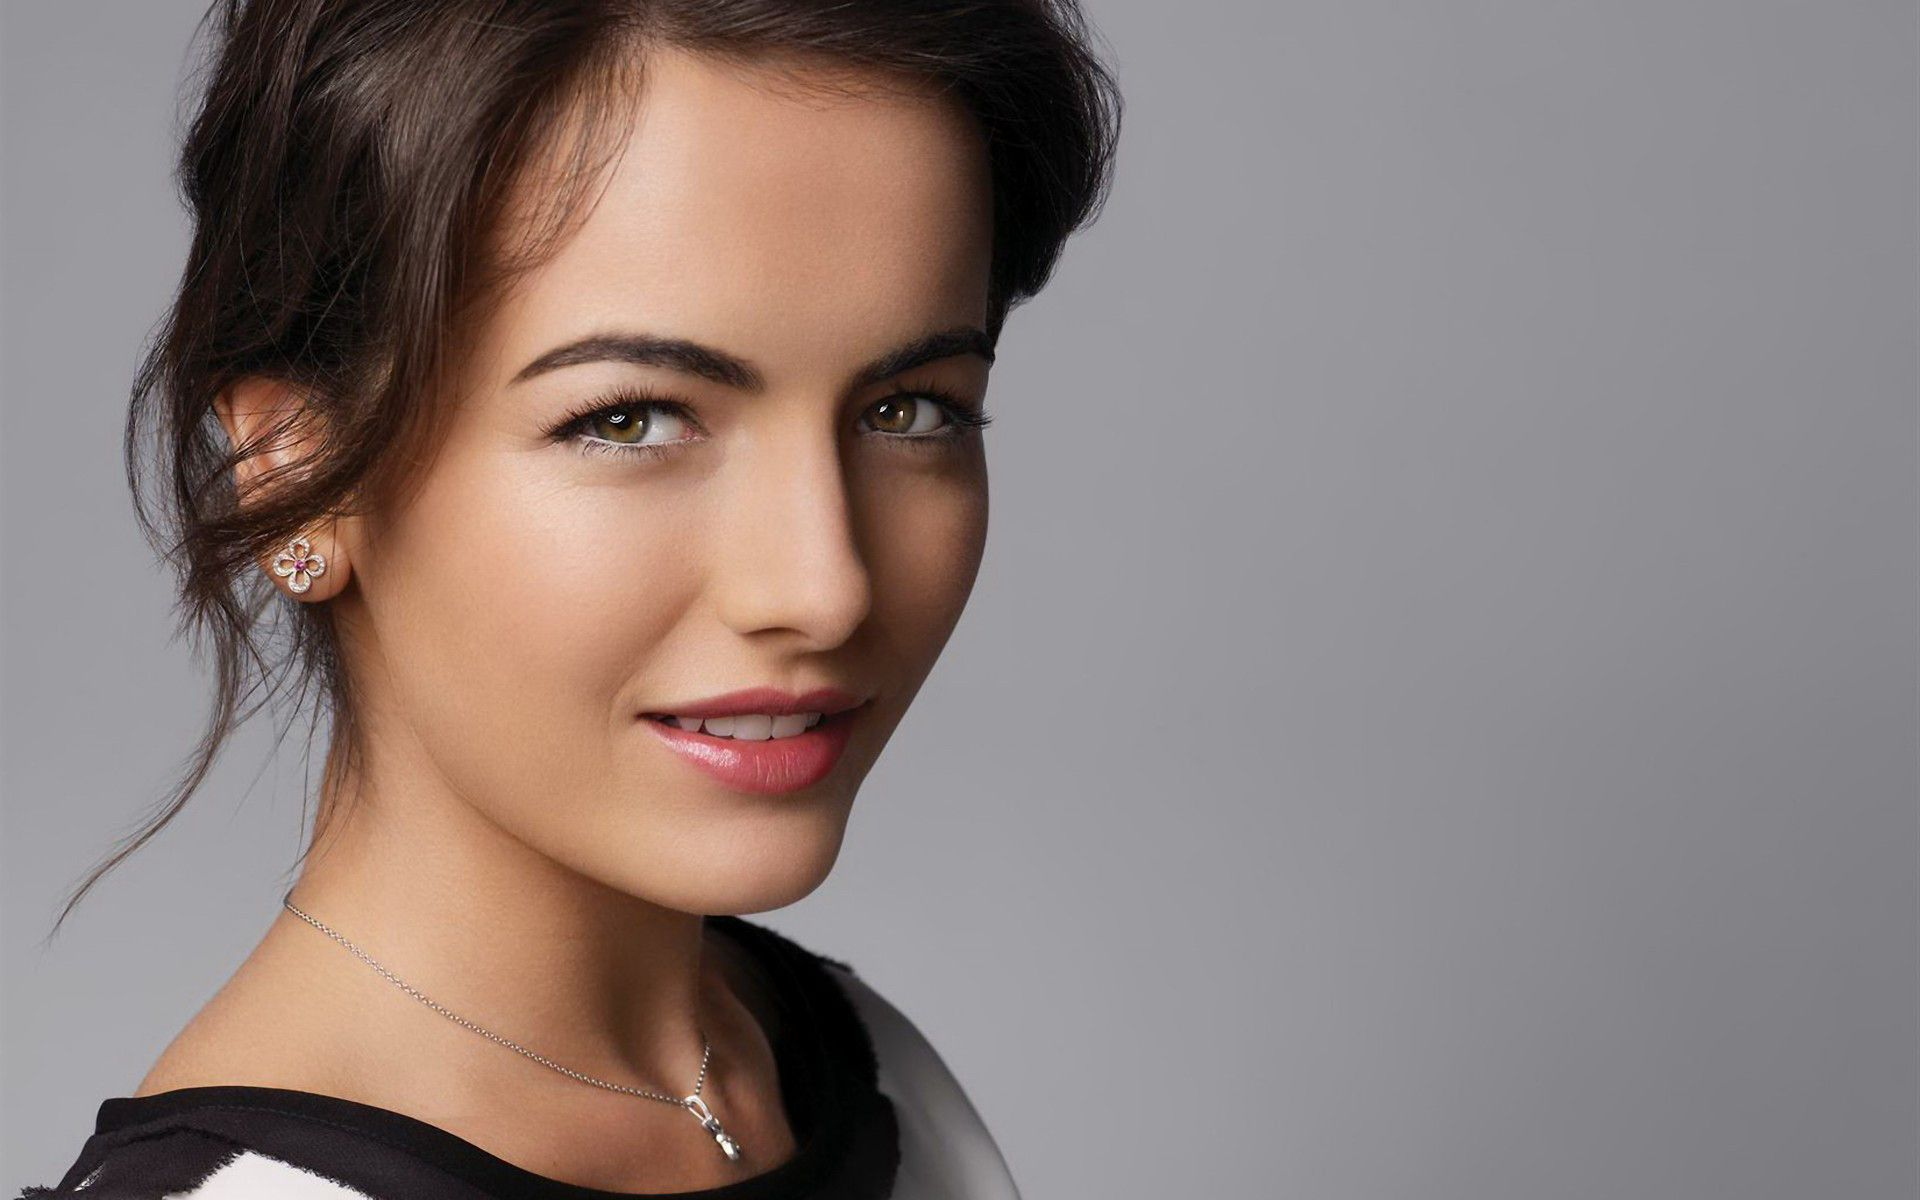 1920x1200 - Camilla Belle Wallpapers 26